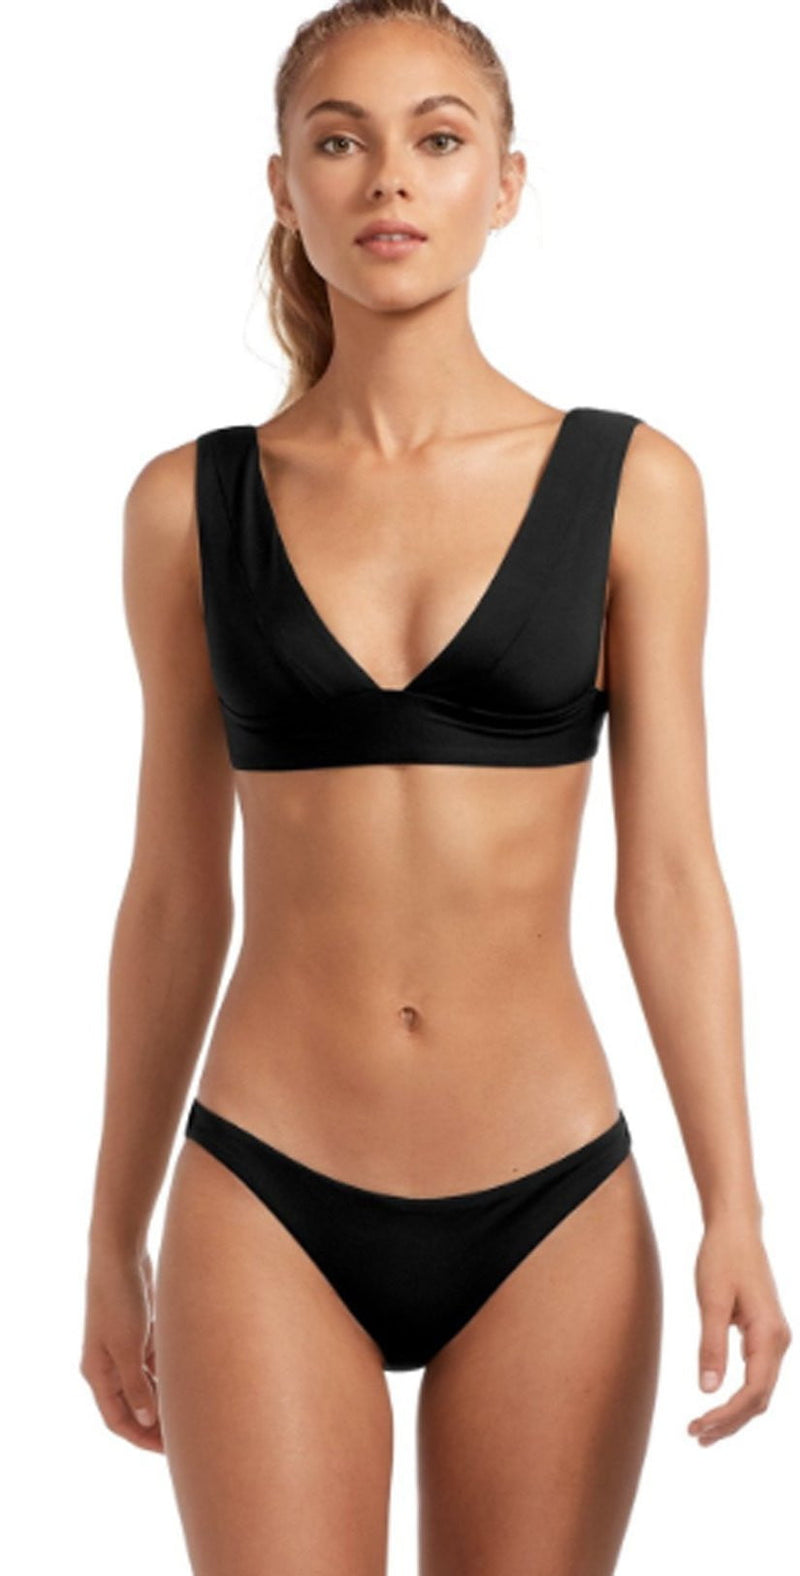 Vitamin A EcoLux Magnolia V-Neck Top in Black 87T ECB: